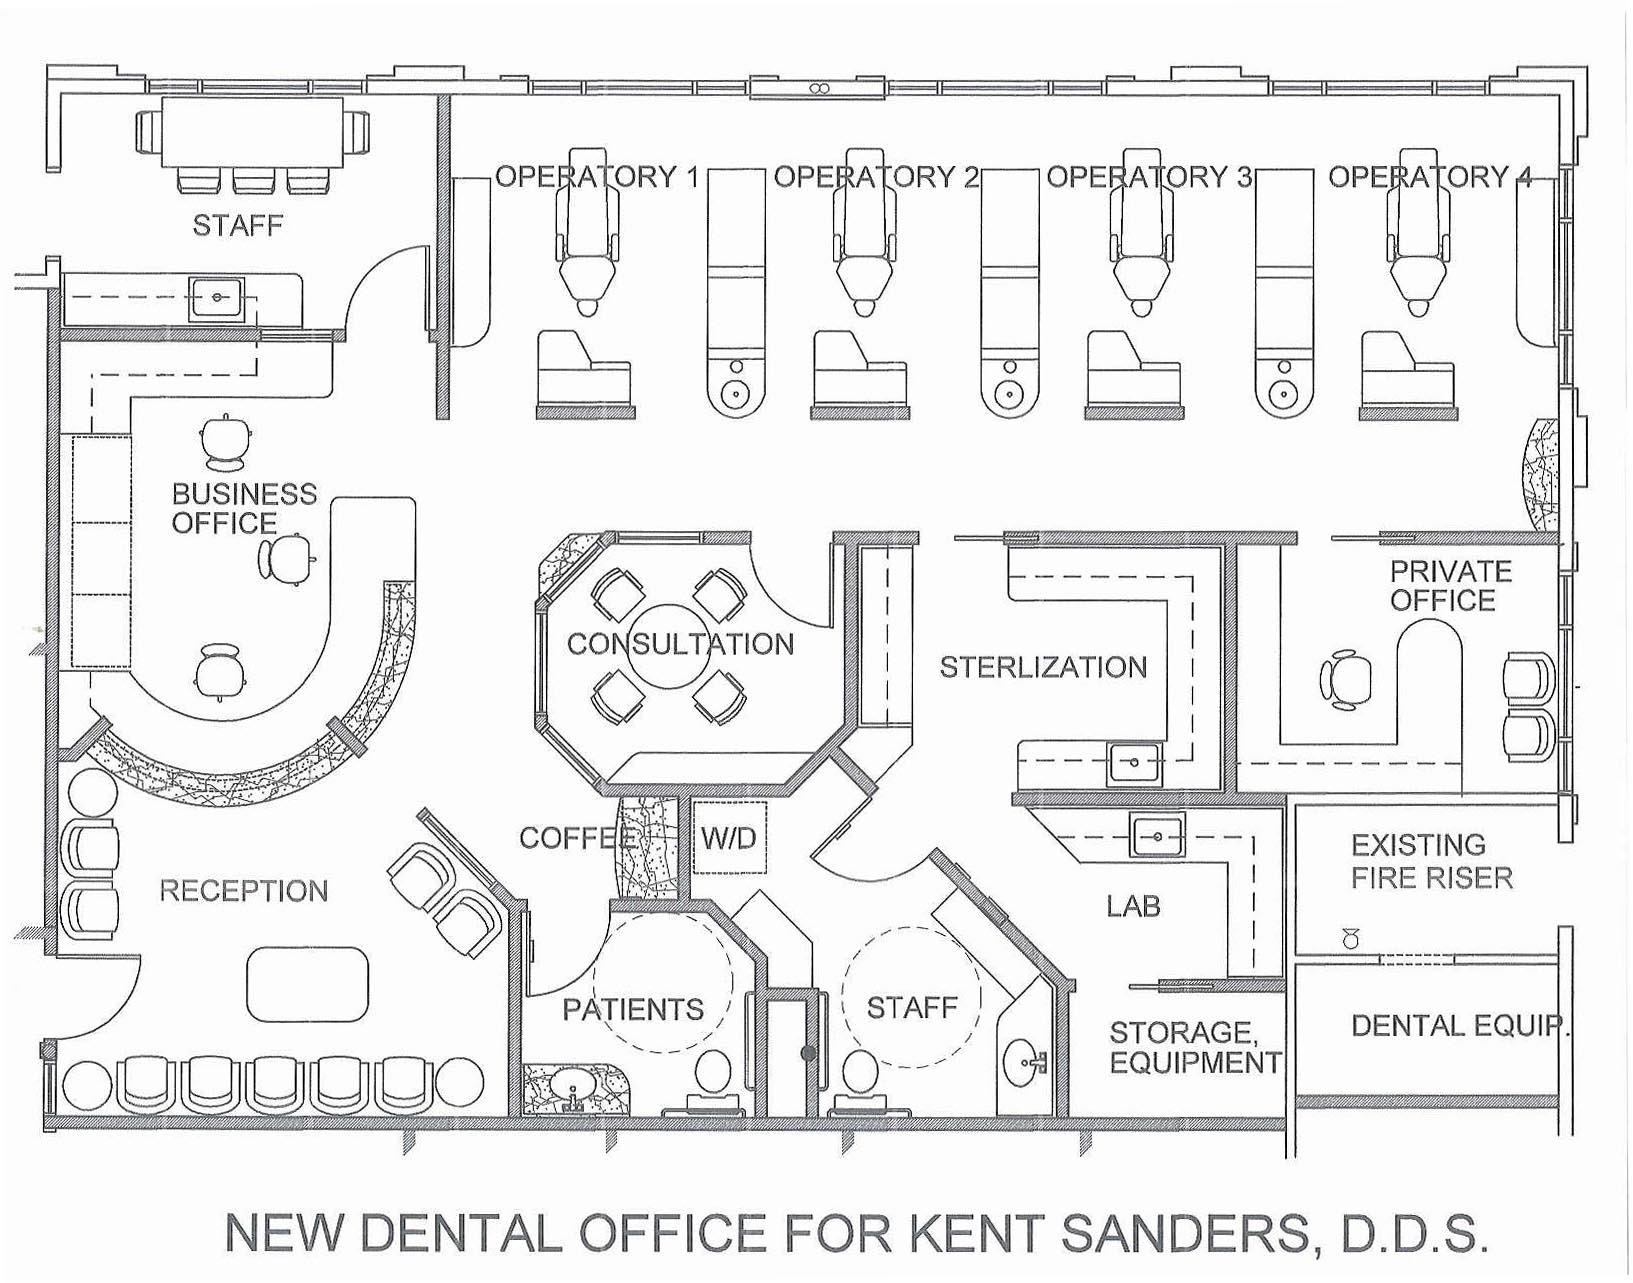 T michael hadley architect sedona arizona architecture interior design for Orthodontic office design floor plan